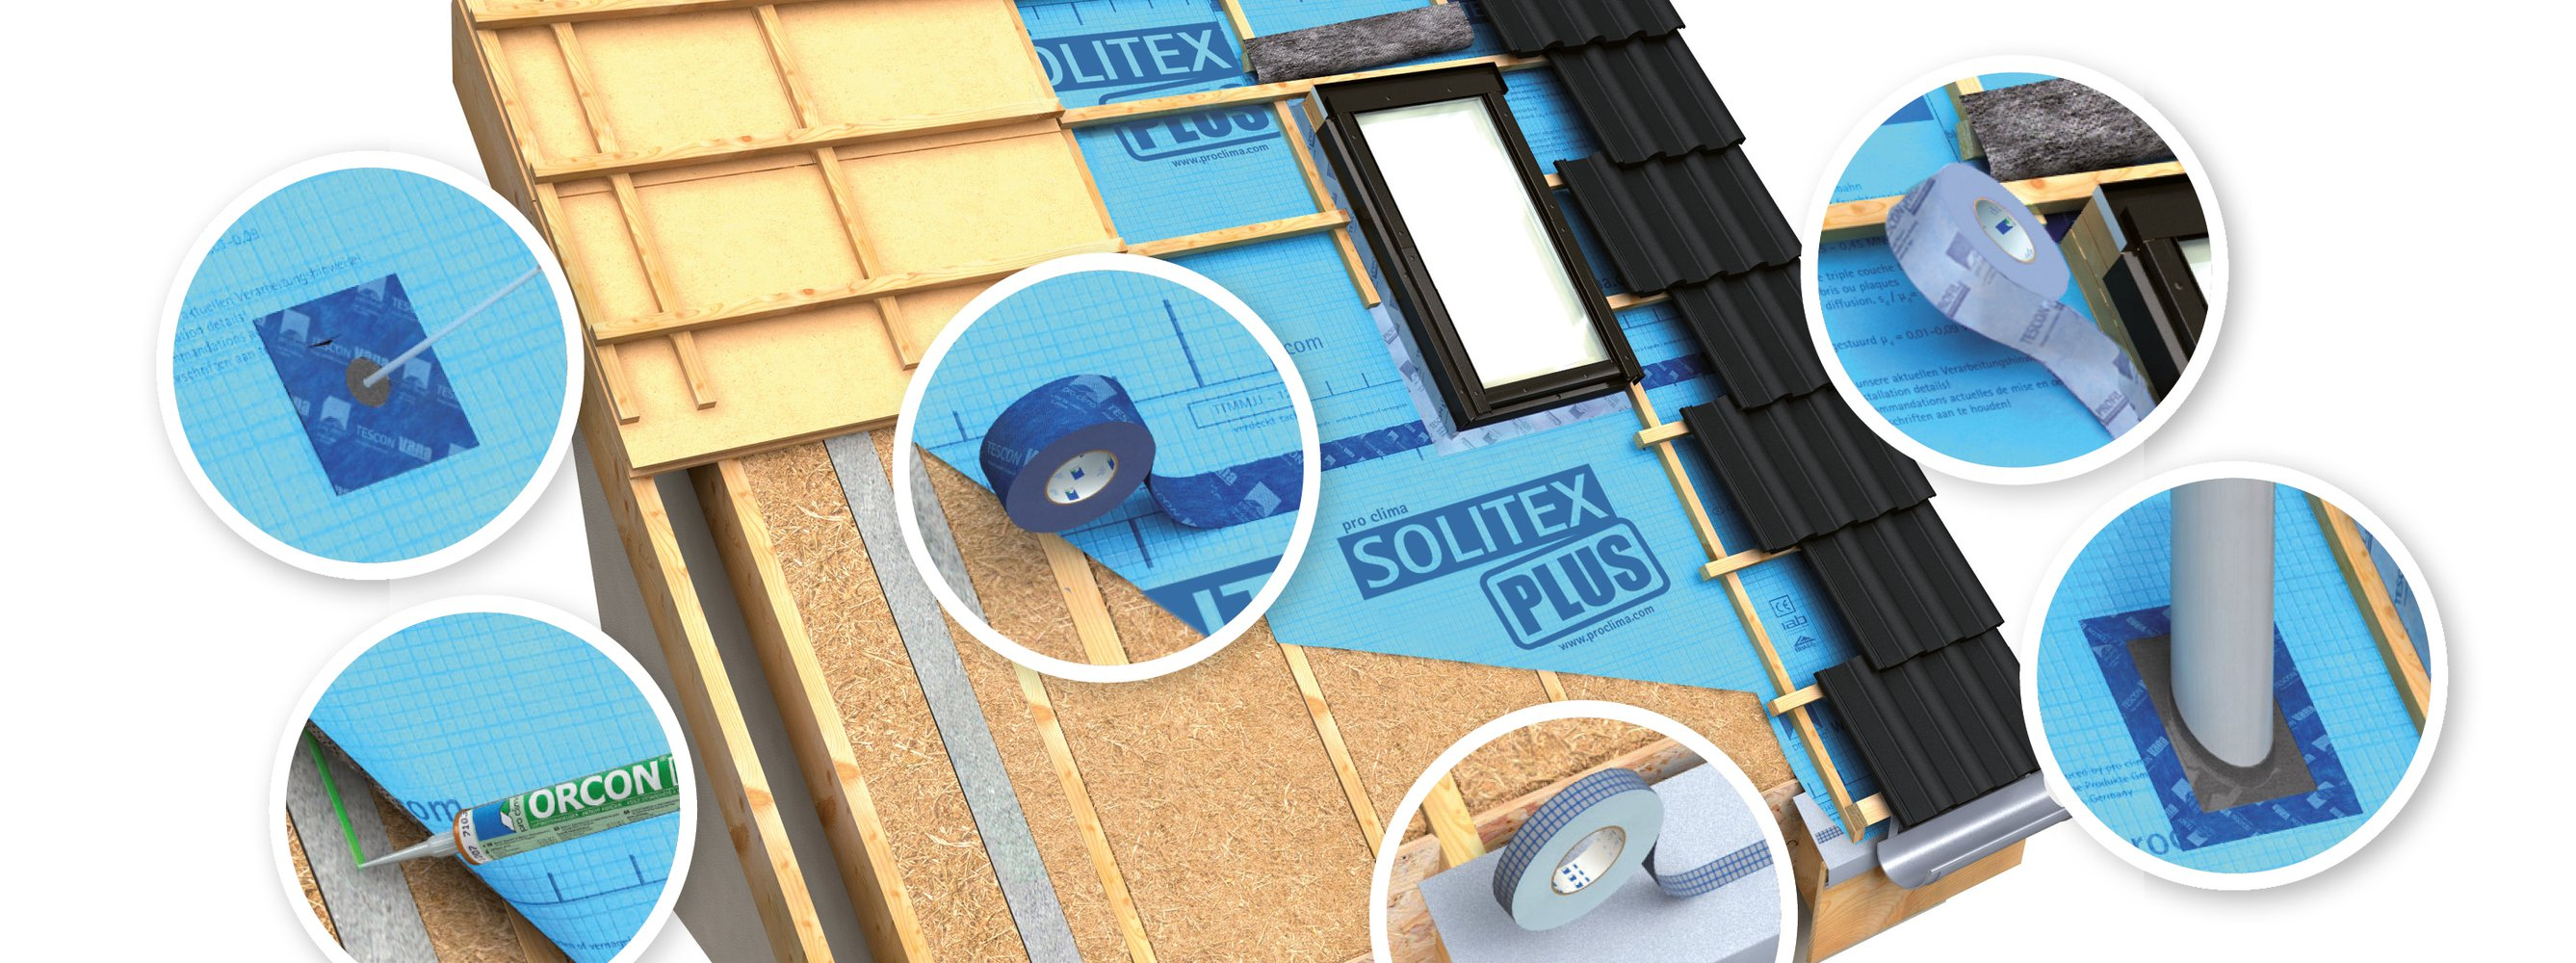 SOLITEX PLUS connect